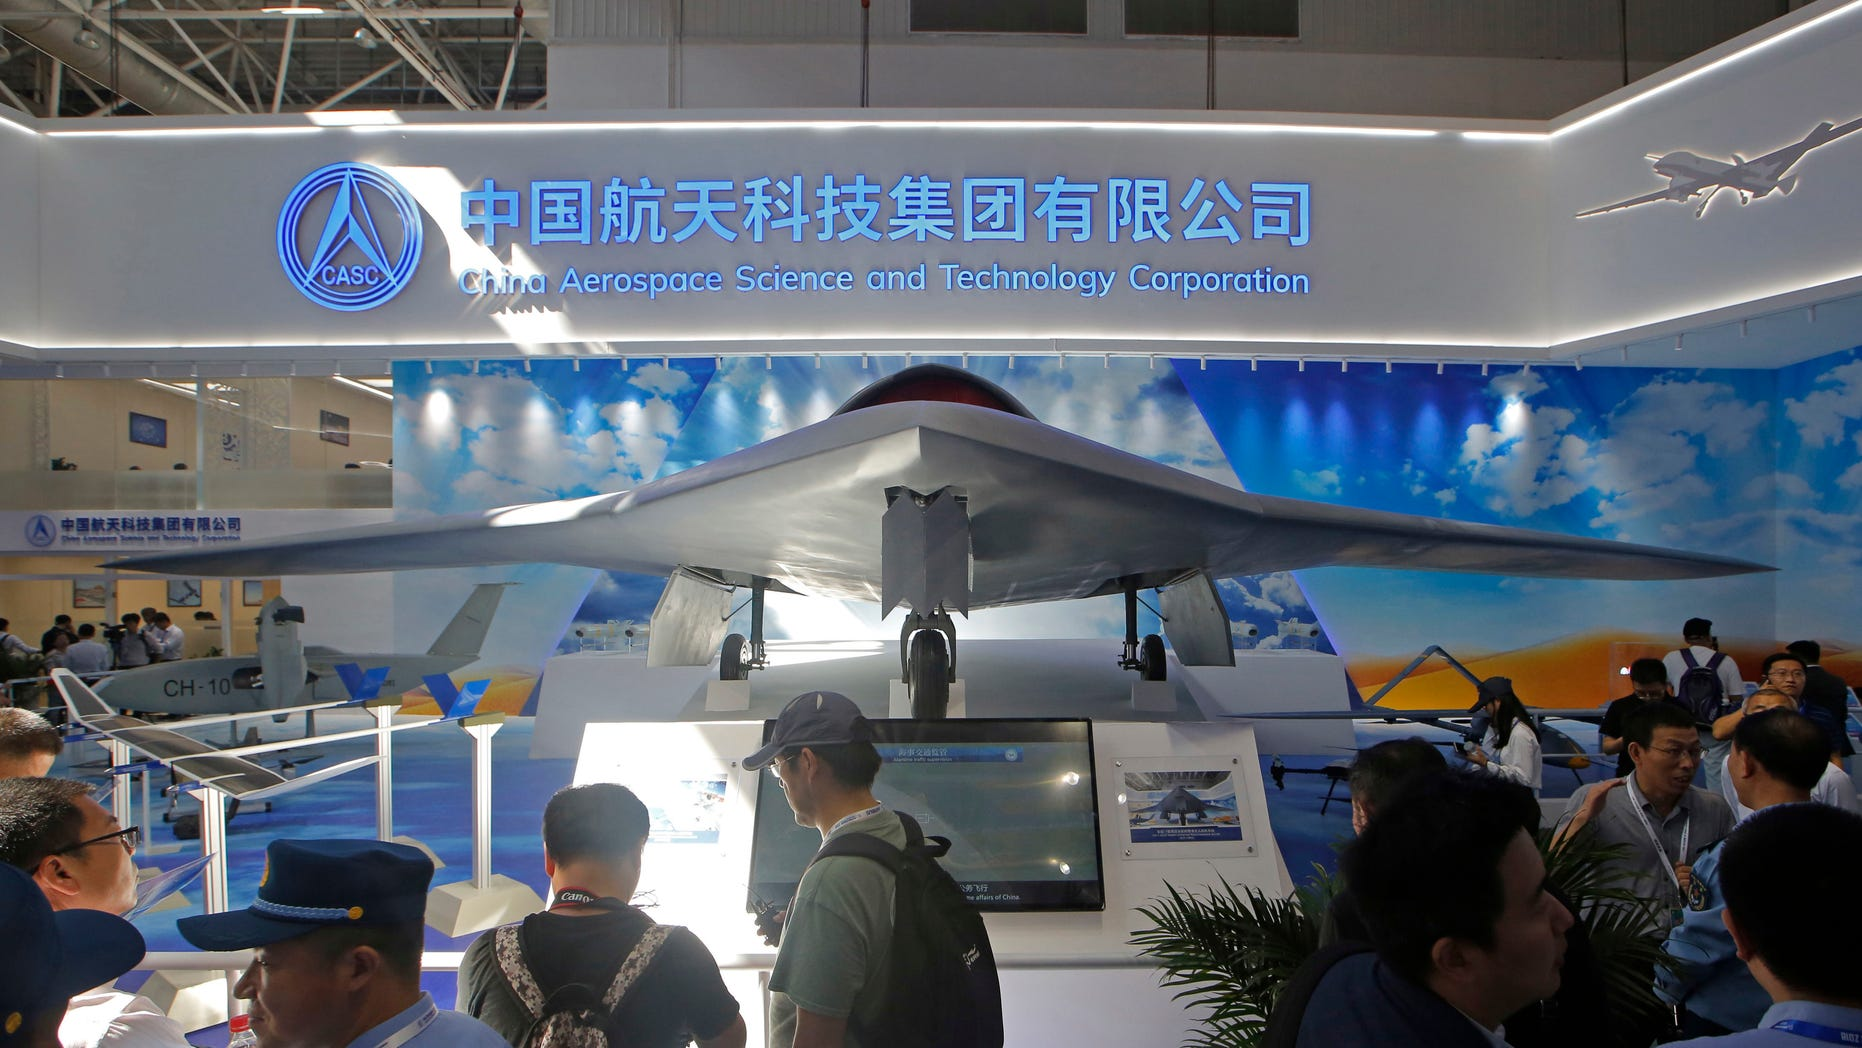 China's new-generation stealth unmanned combat aircraft prototype, the CH-7, is displayed during the 12th China International Aviation and Aerospace Exhibition. (AP Photo/Kin Cheung, File)